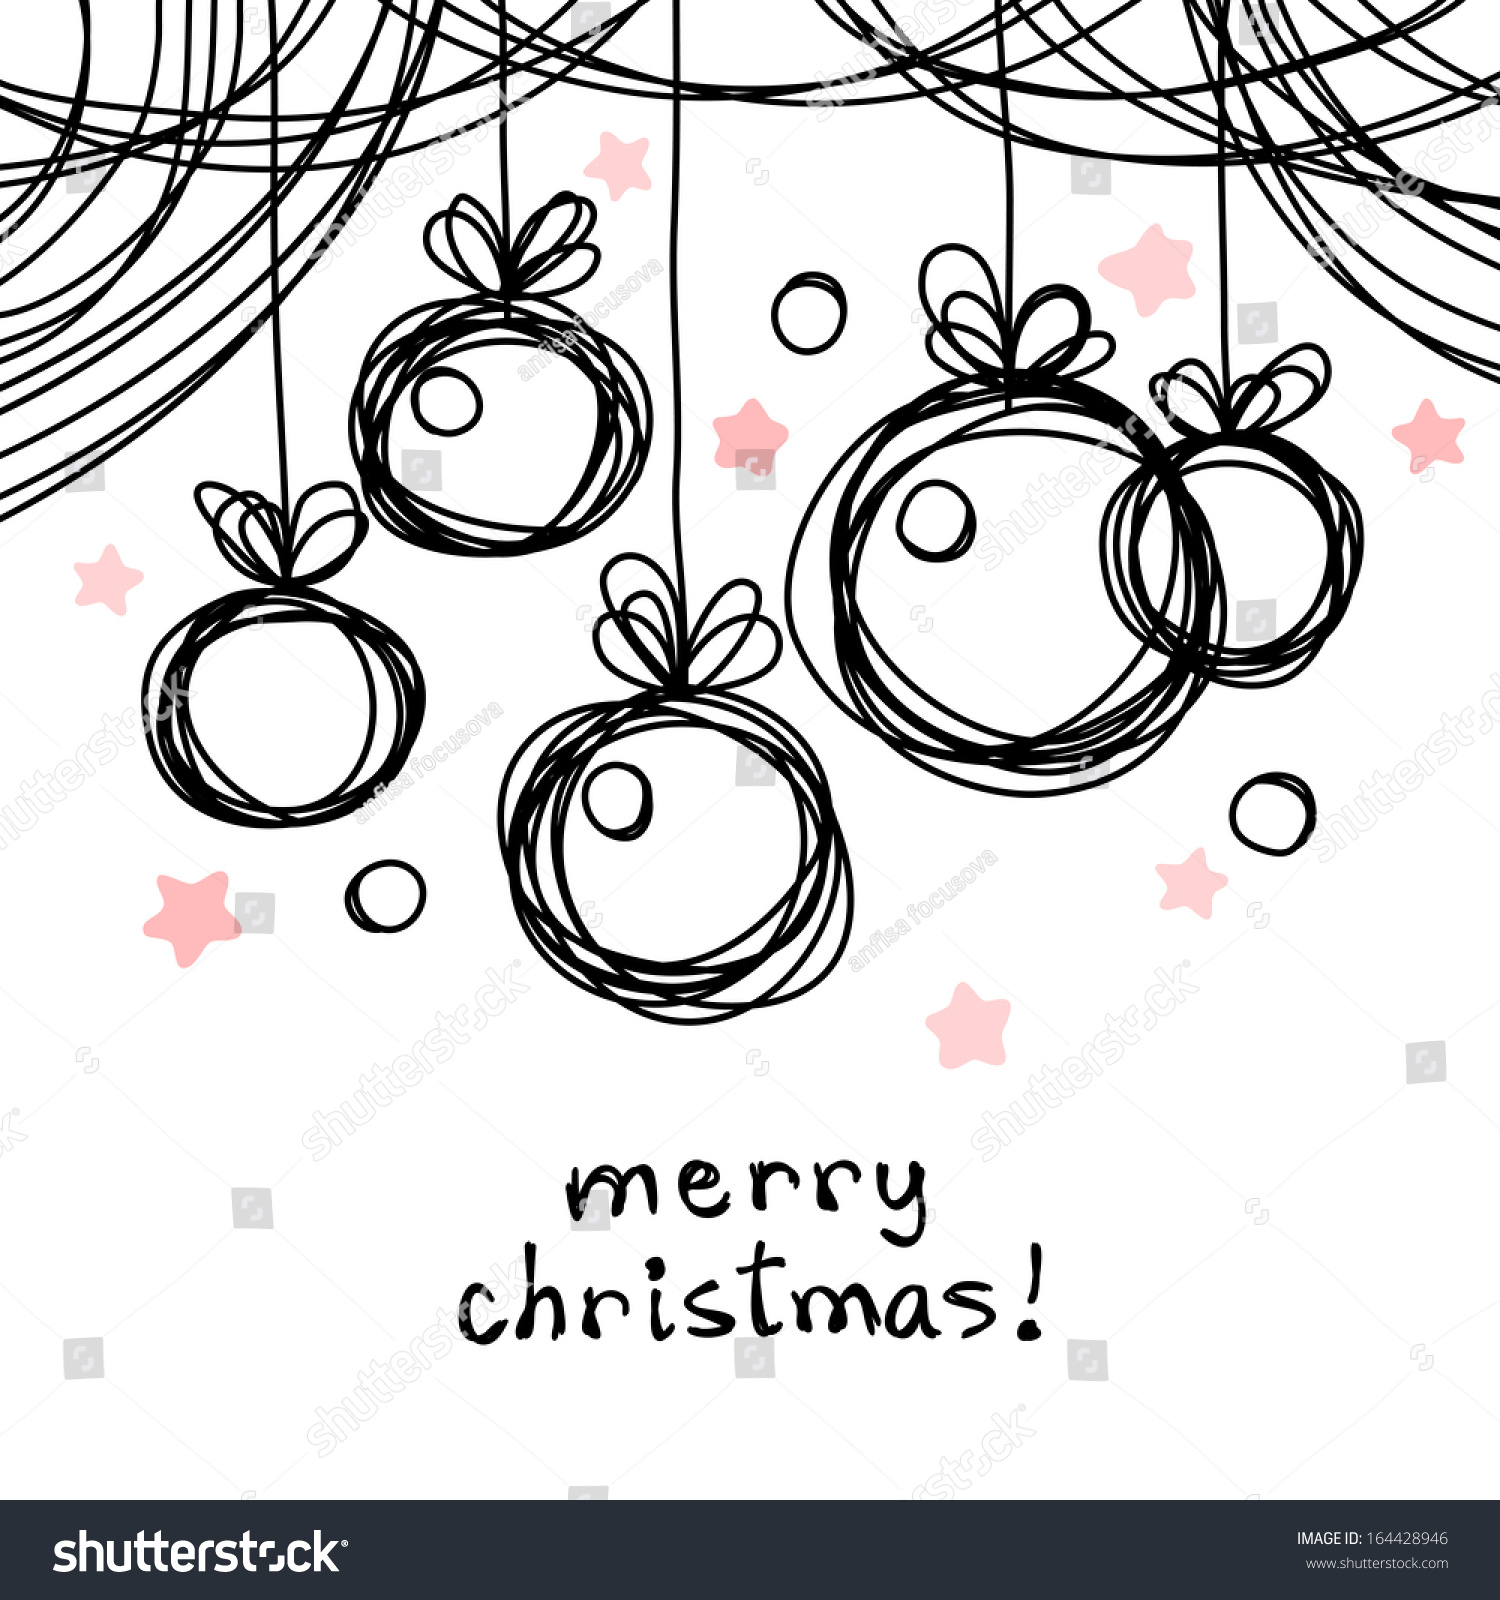 Vector Christmas Doodle Background Cute Christmas Stock Vector 164428946 - Shutterstock